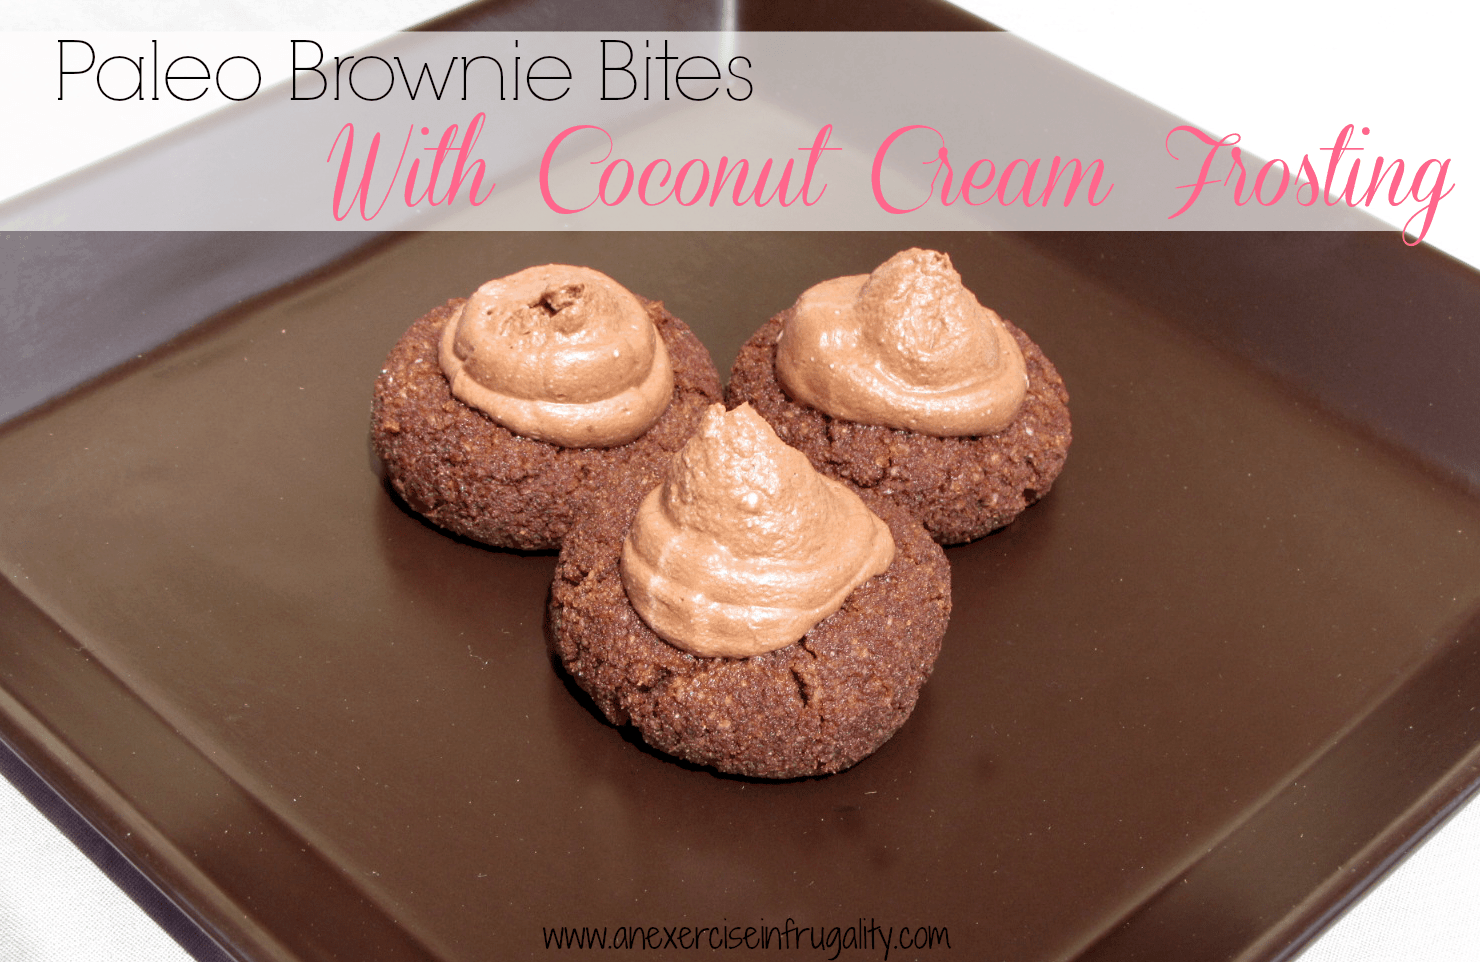 Paleo Brownie Bites with Coconut Cream Frosting